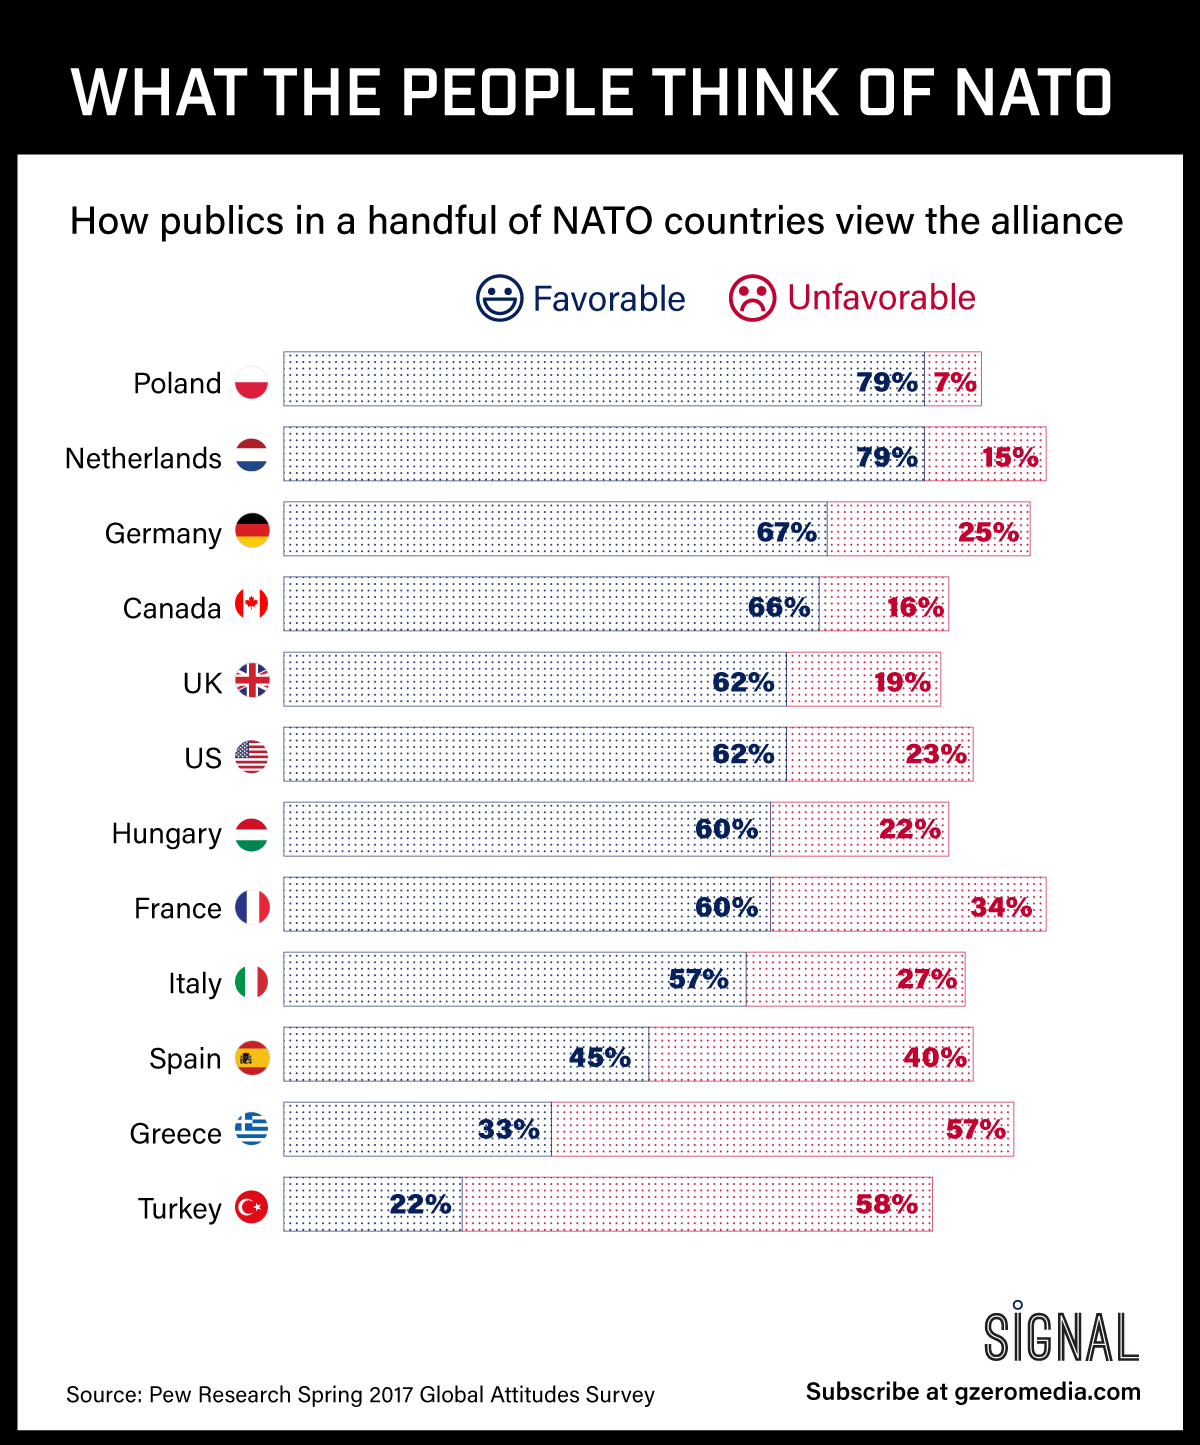 GRAPHIC TRUTH: WHAT THE PEOPLE THINK OF NATO